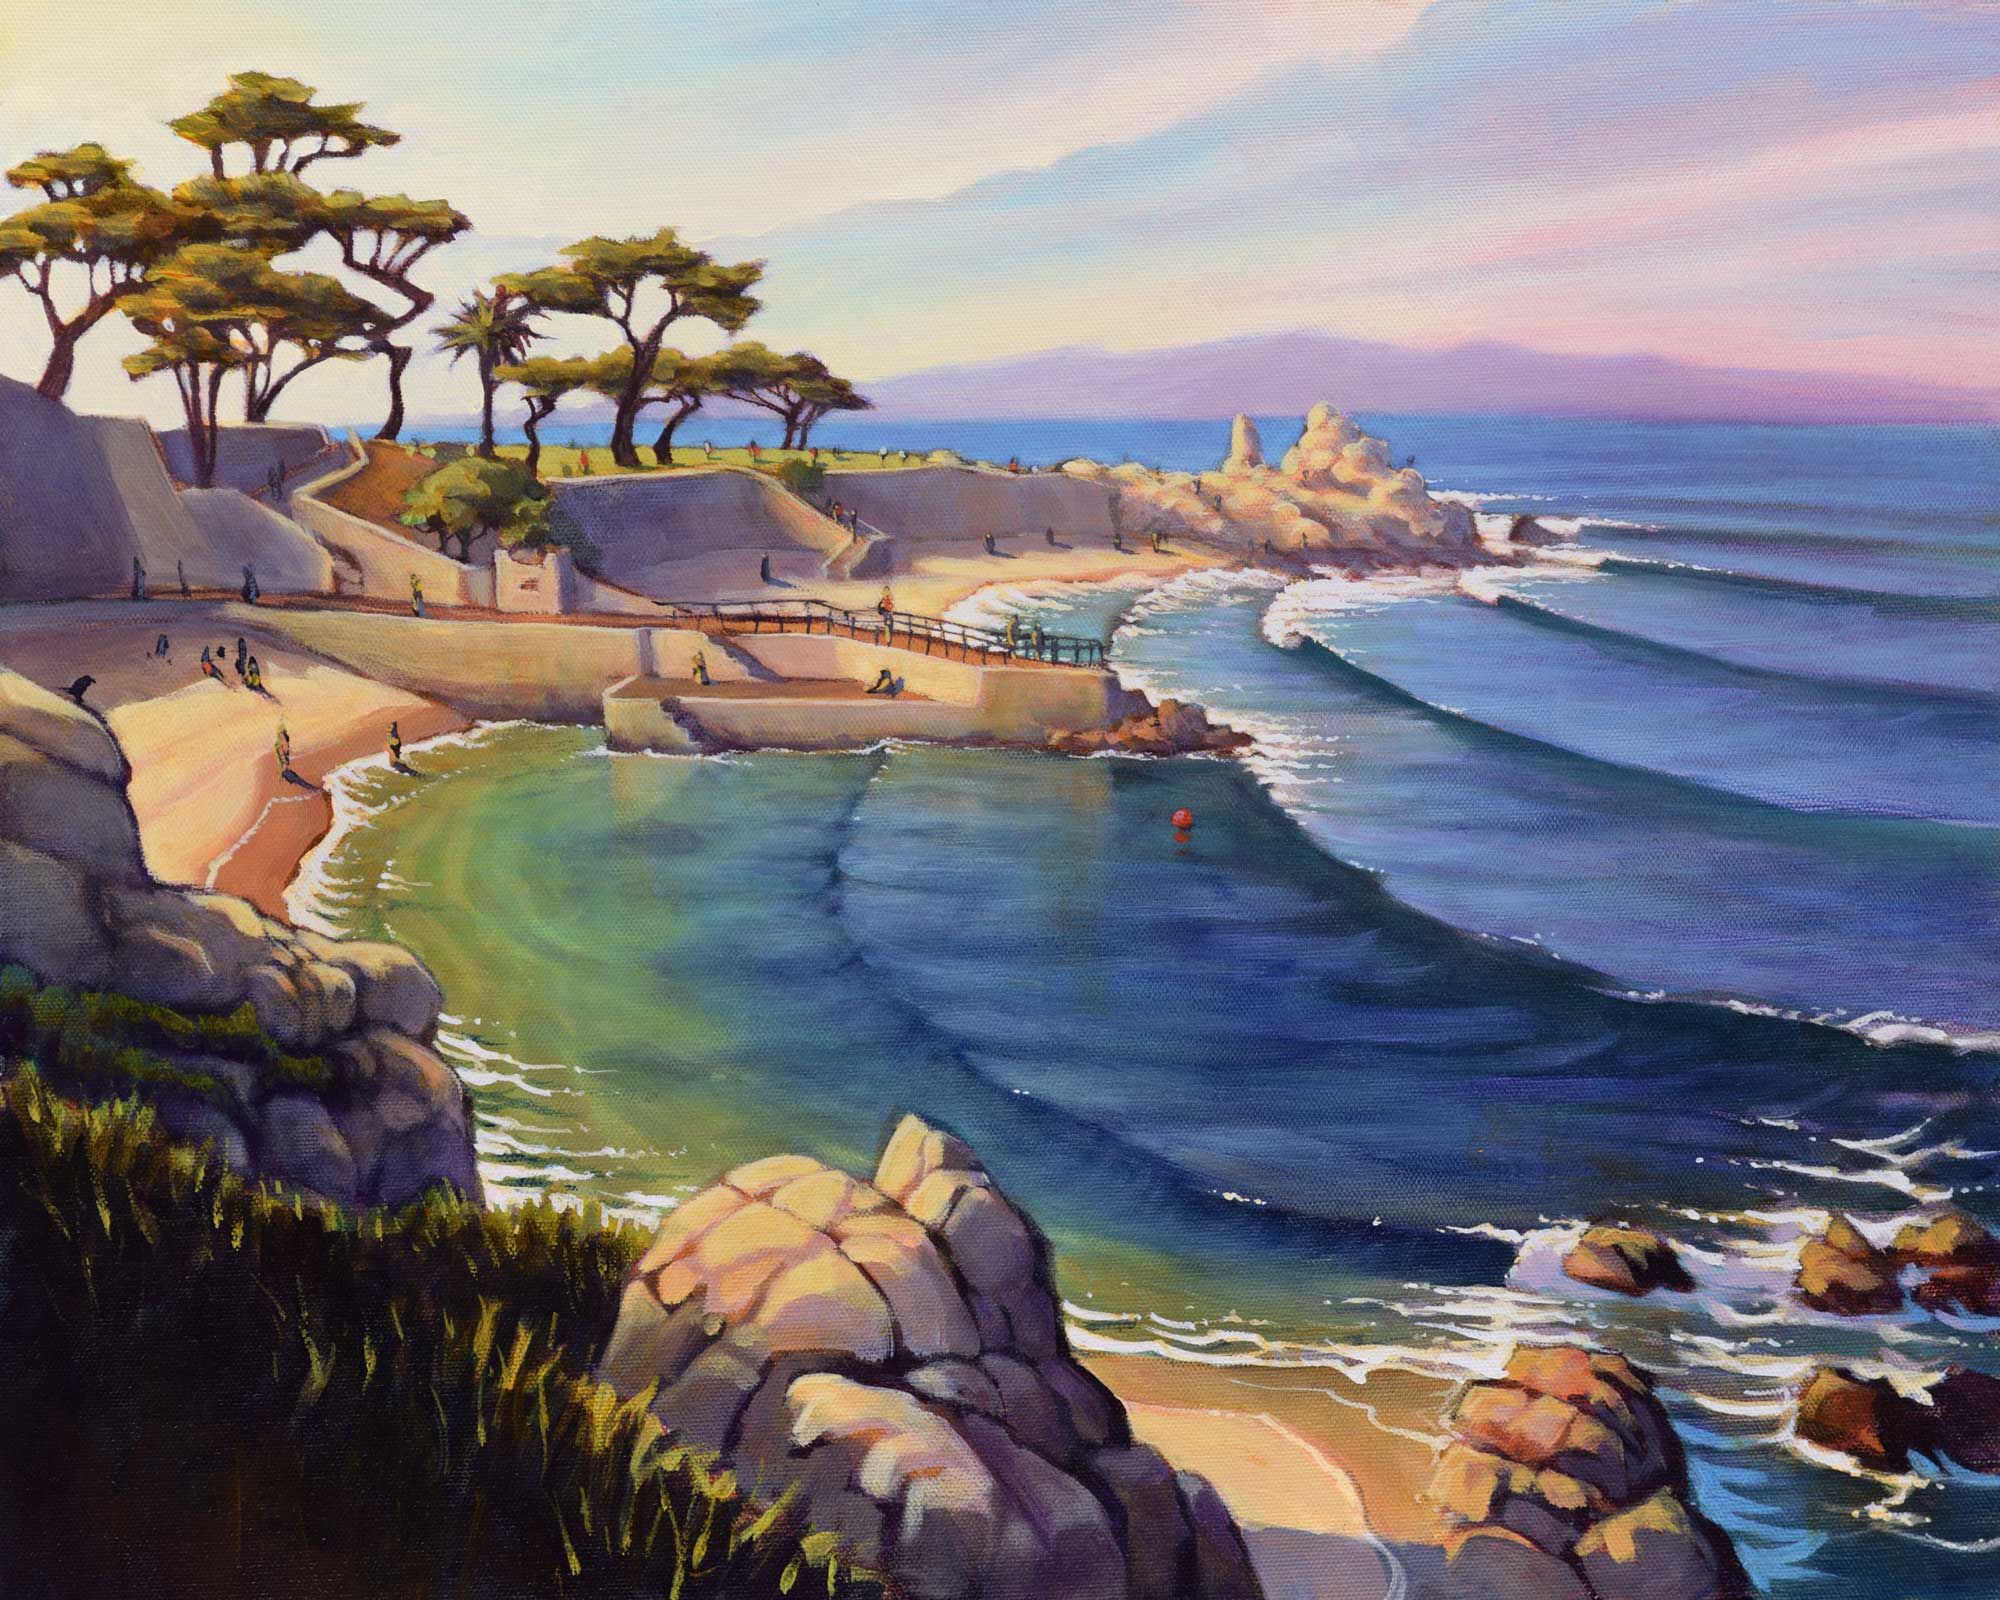 A plein air landscape painting of Lover's Point near Pacific Grove on the Monterey County coast of California